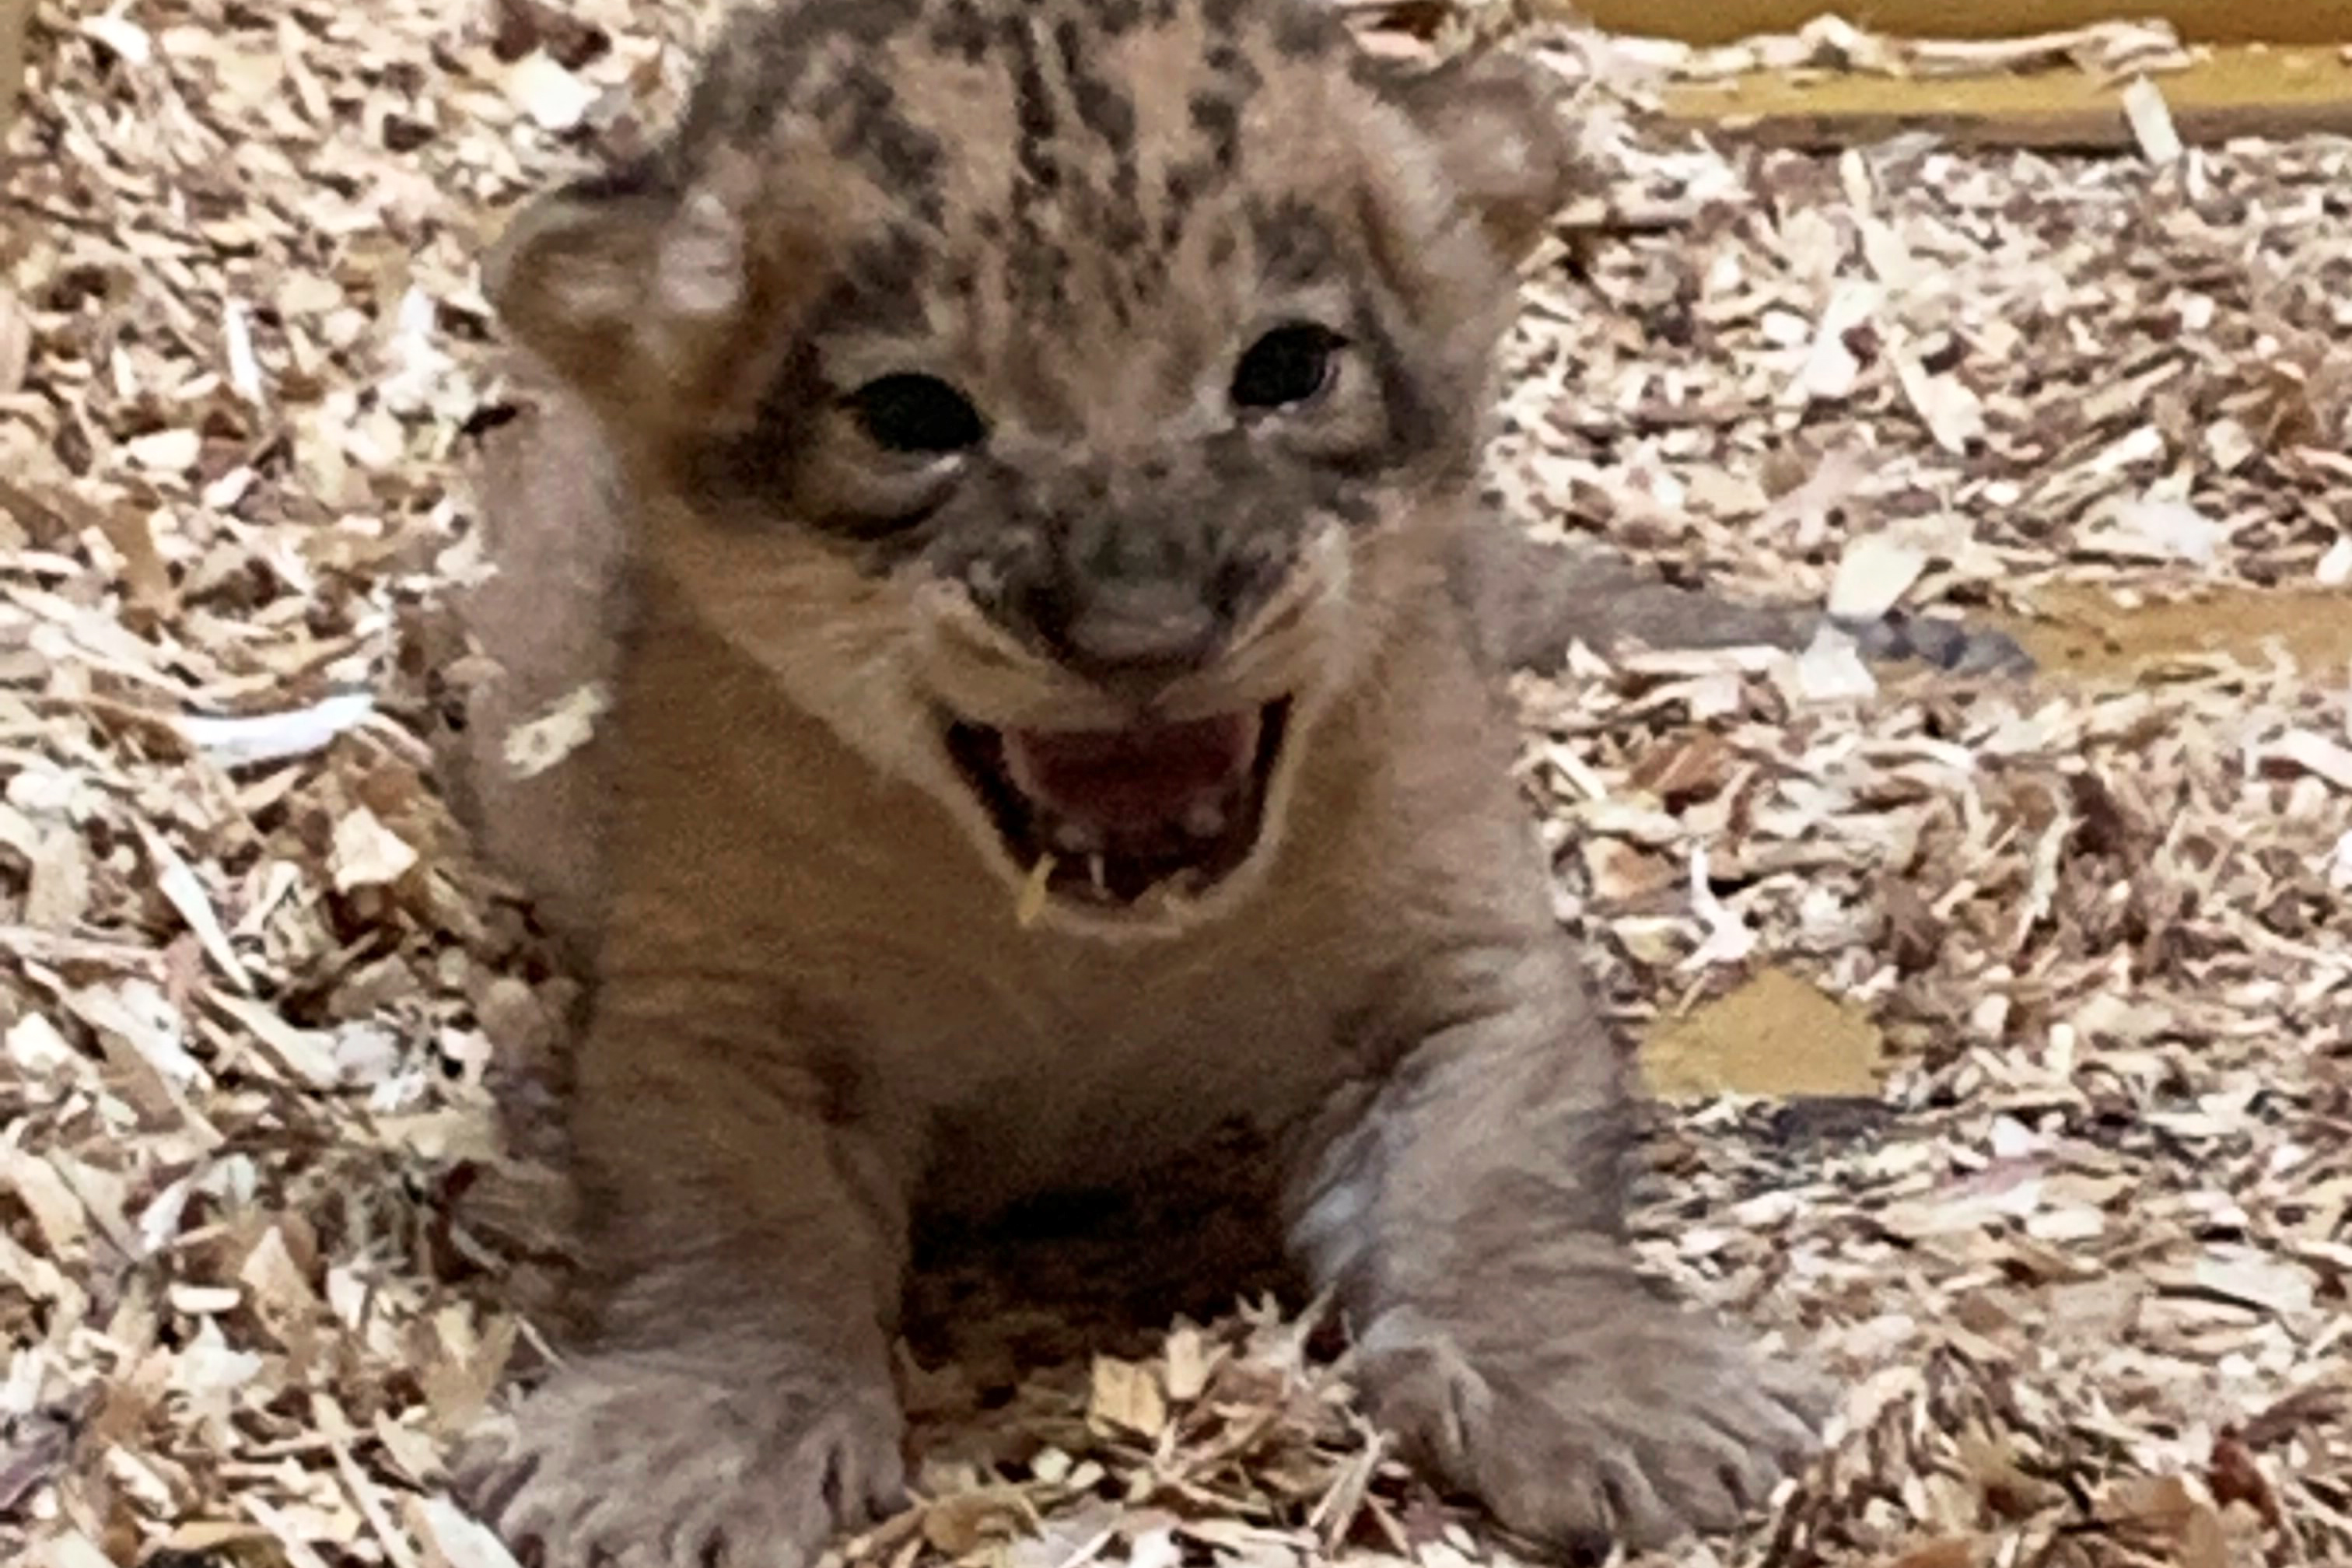 The lion cub born in the Denver Zoo July 25 explores his den box.  The African lion was born to mom Neliah, 7, and dad Tobias, 3.